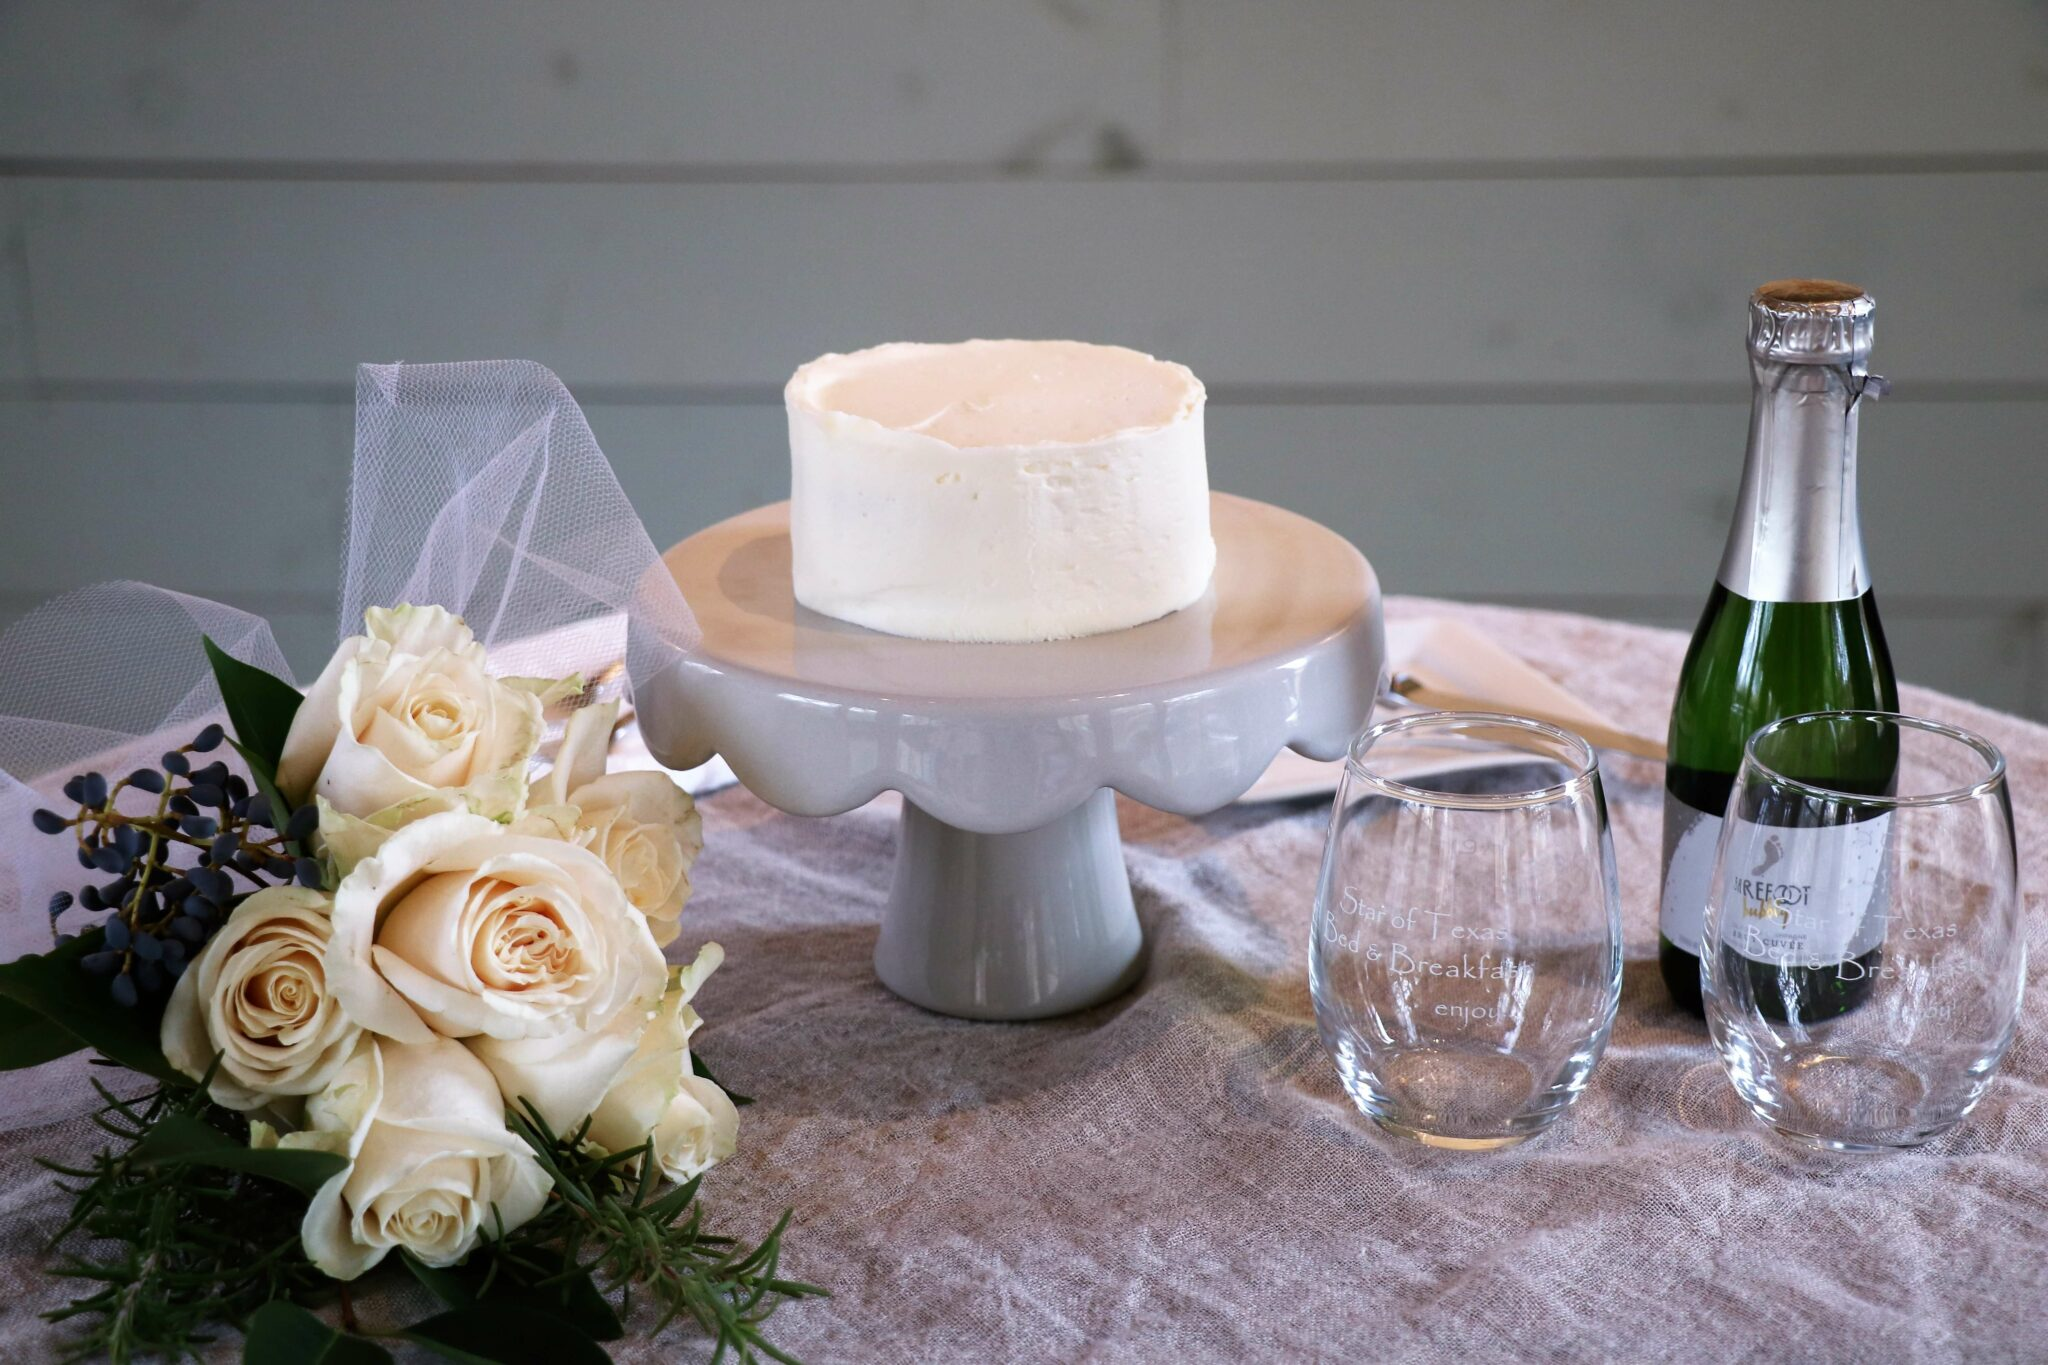 wedding cake, flowers and champagne